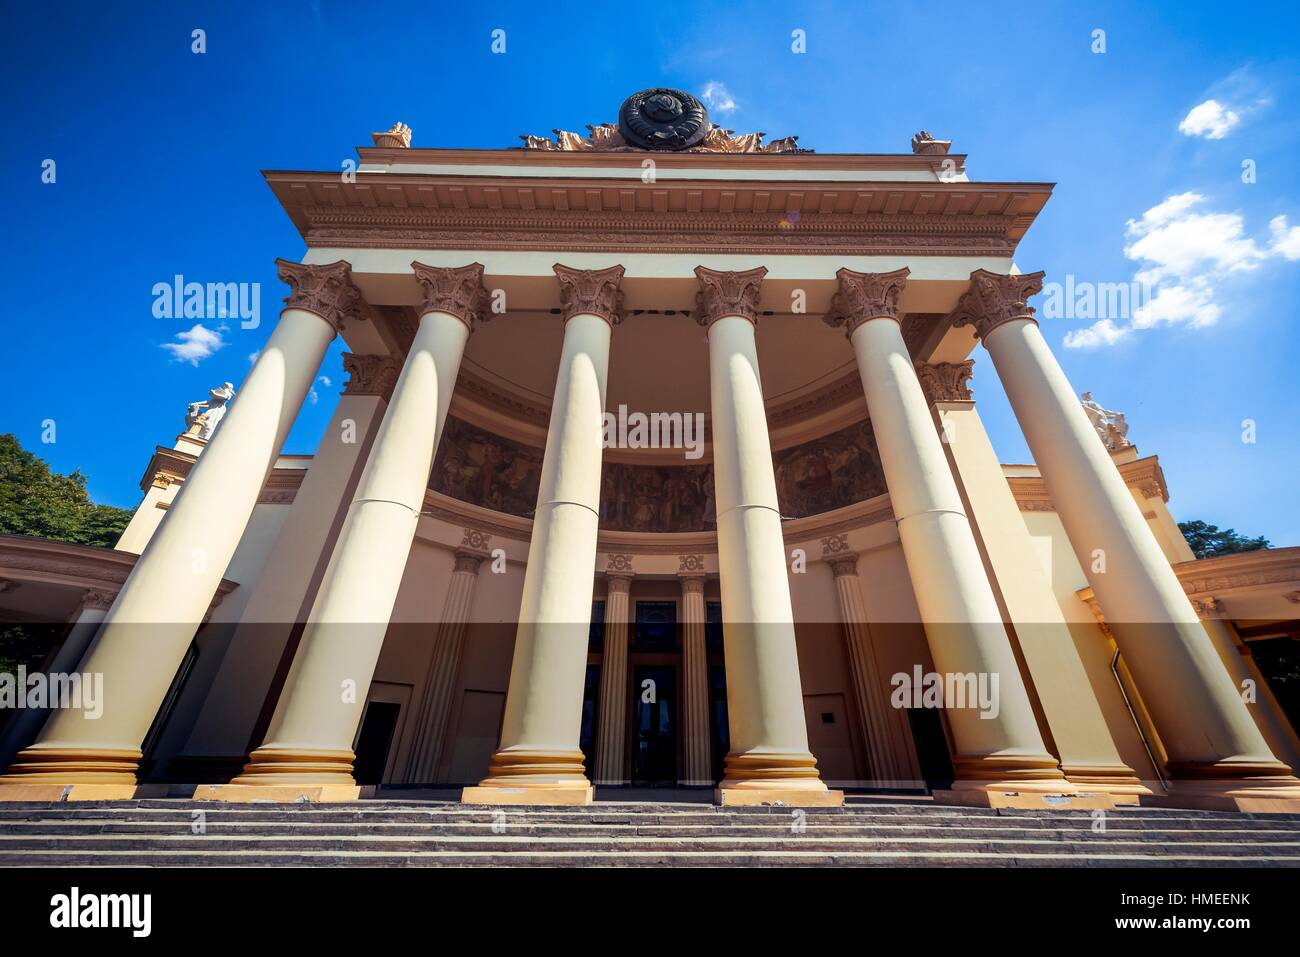 Pavillion atomic power at VDNKh expo (Moscow). - Stock Image